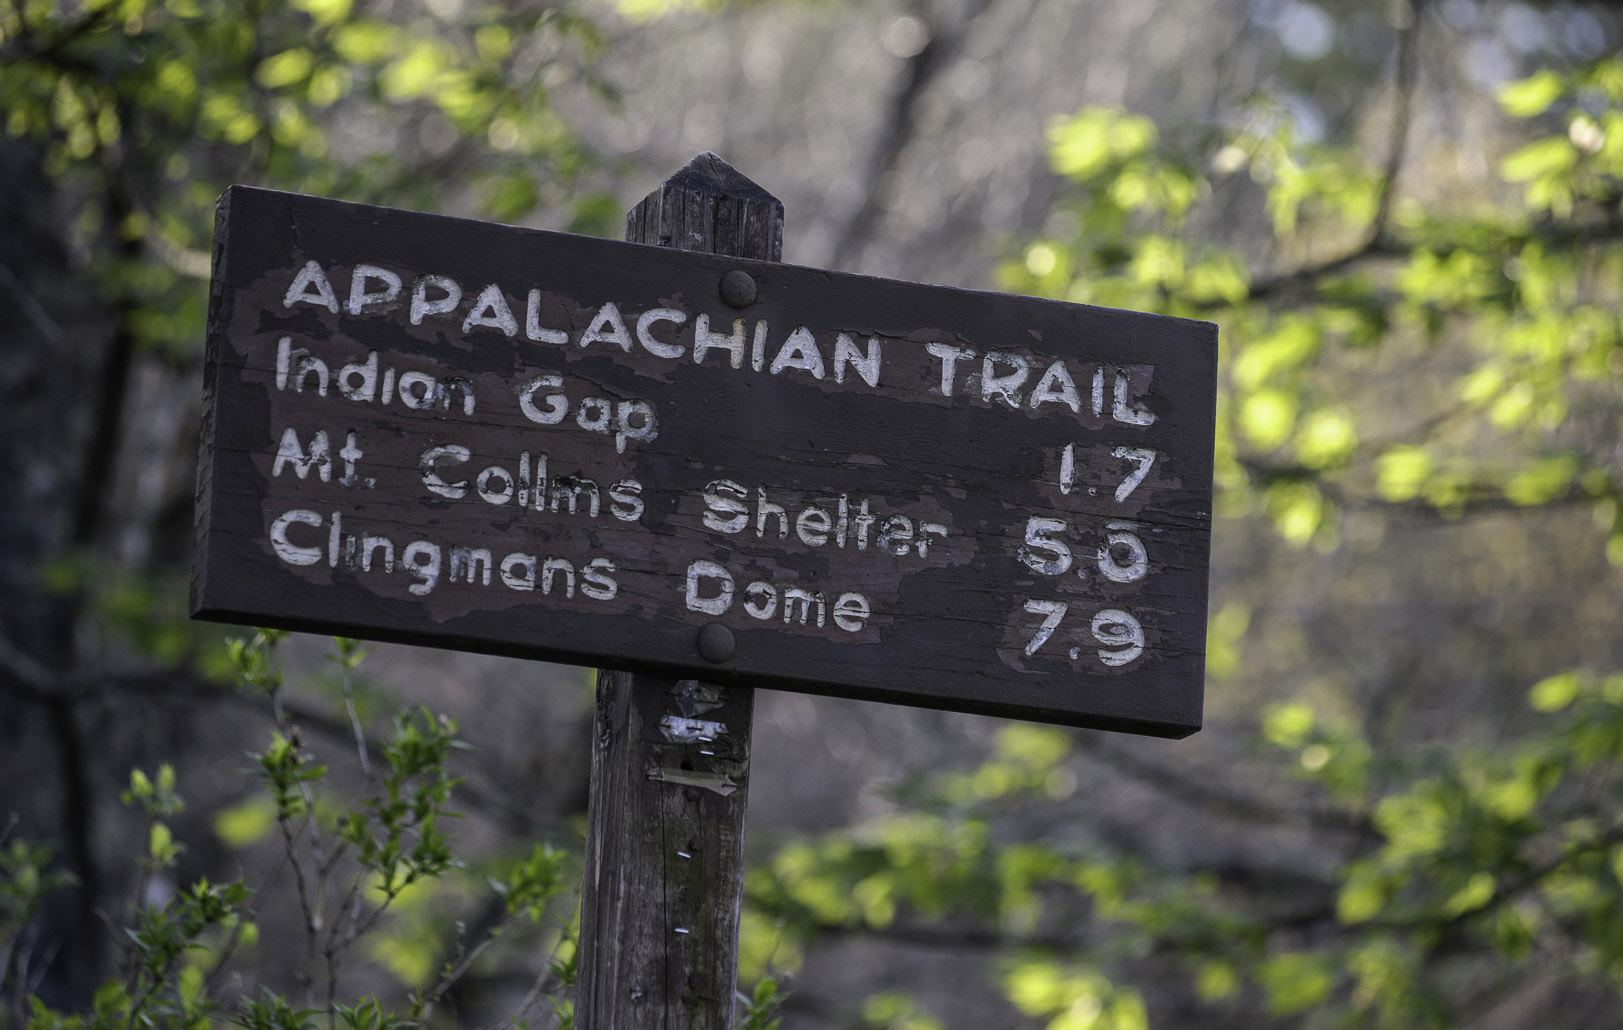 The Appalachian Trail, part of the National Trails System, wanders through some of the most spectacular scenery in the eastern U.S., including through Great Smoky Mountains National Park. © 2013 Chris Nicholson.